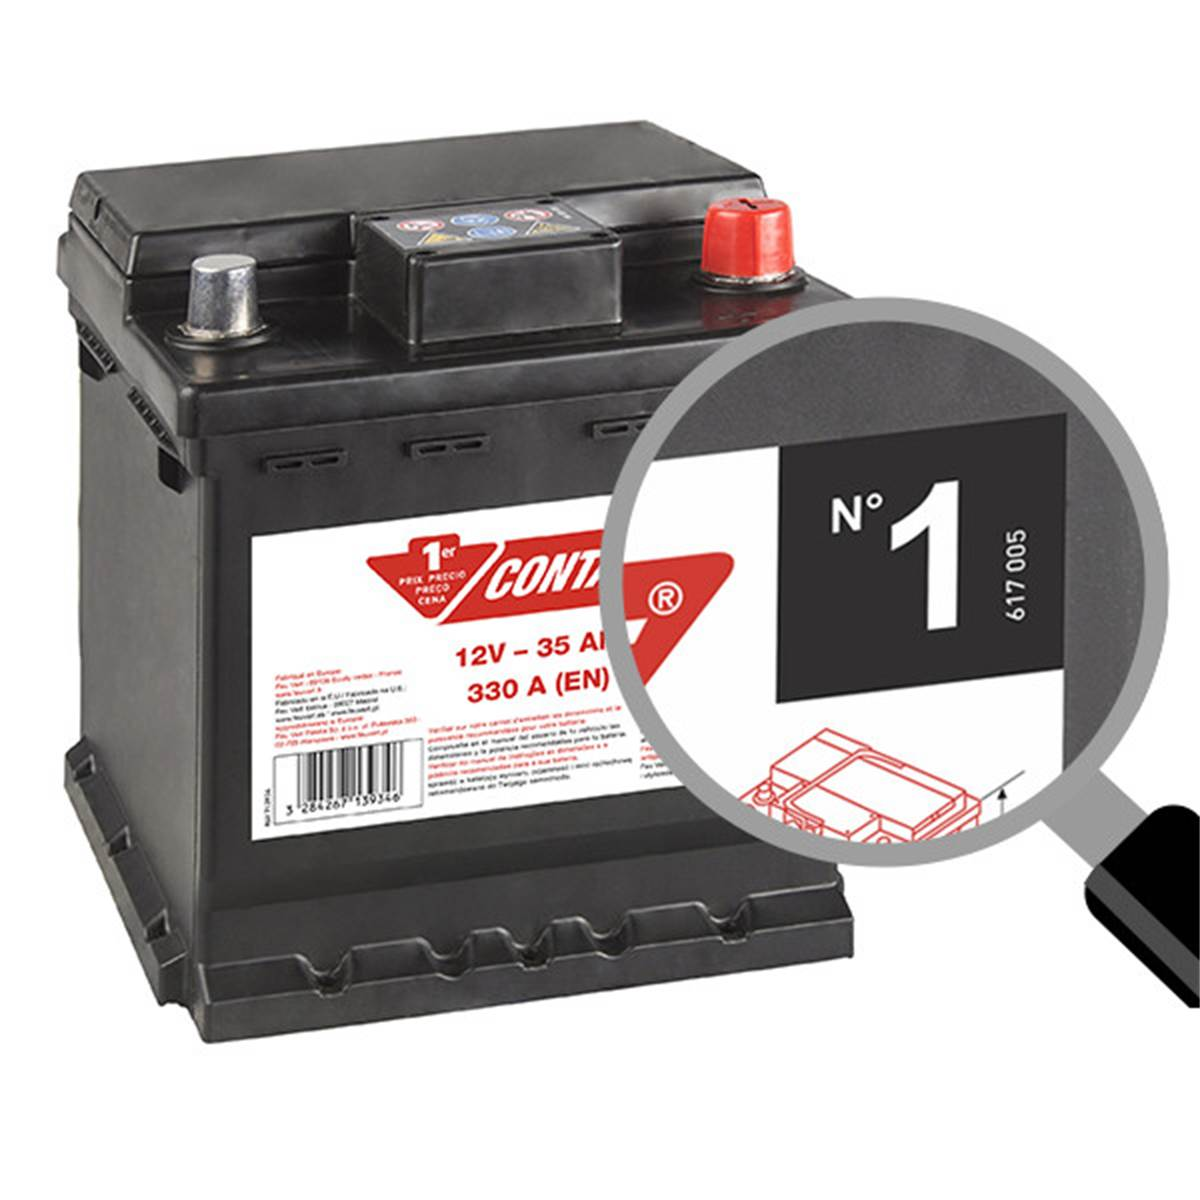 Batterie voiture Contact n°1 - 35Ah / 330A - 12V